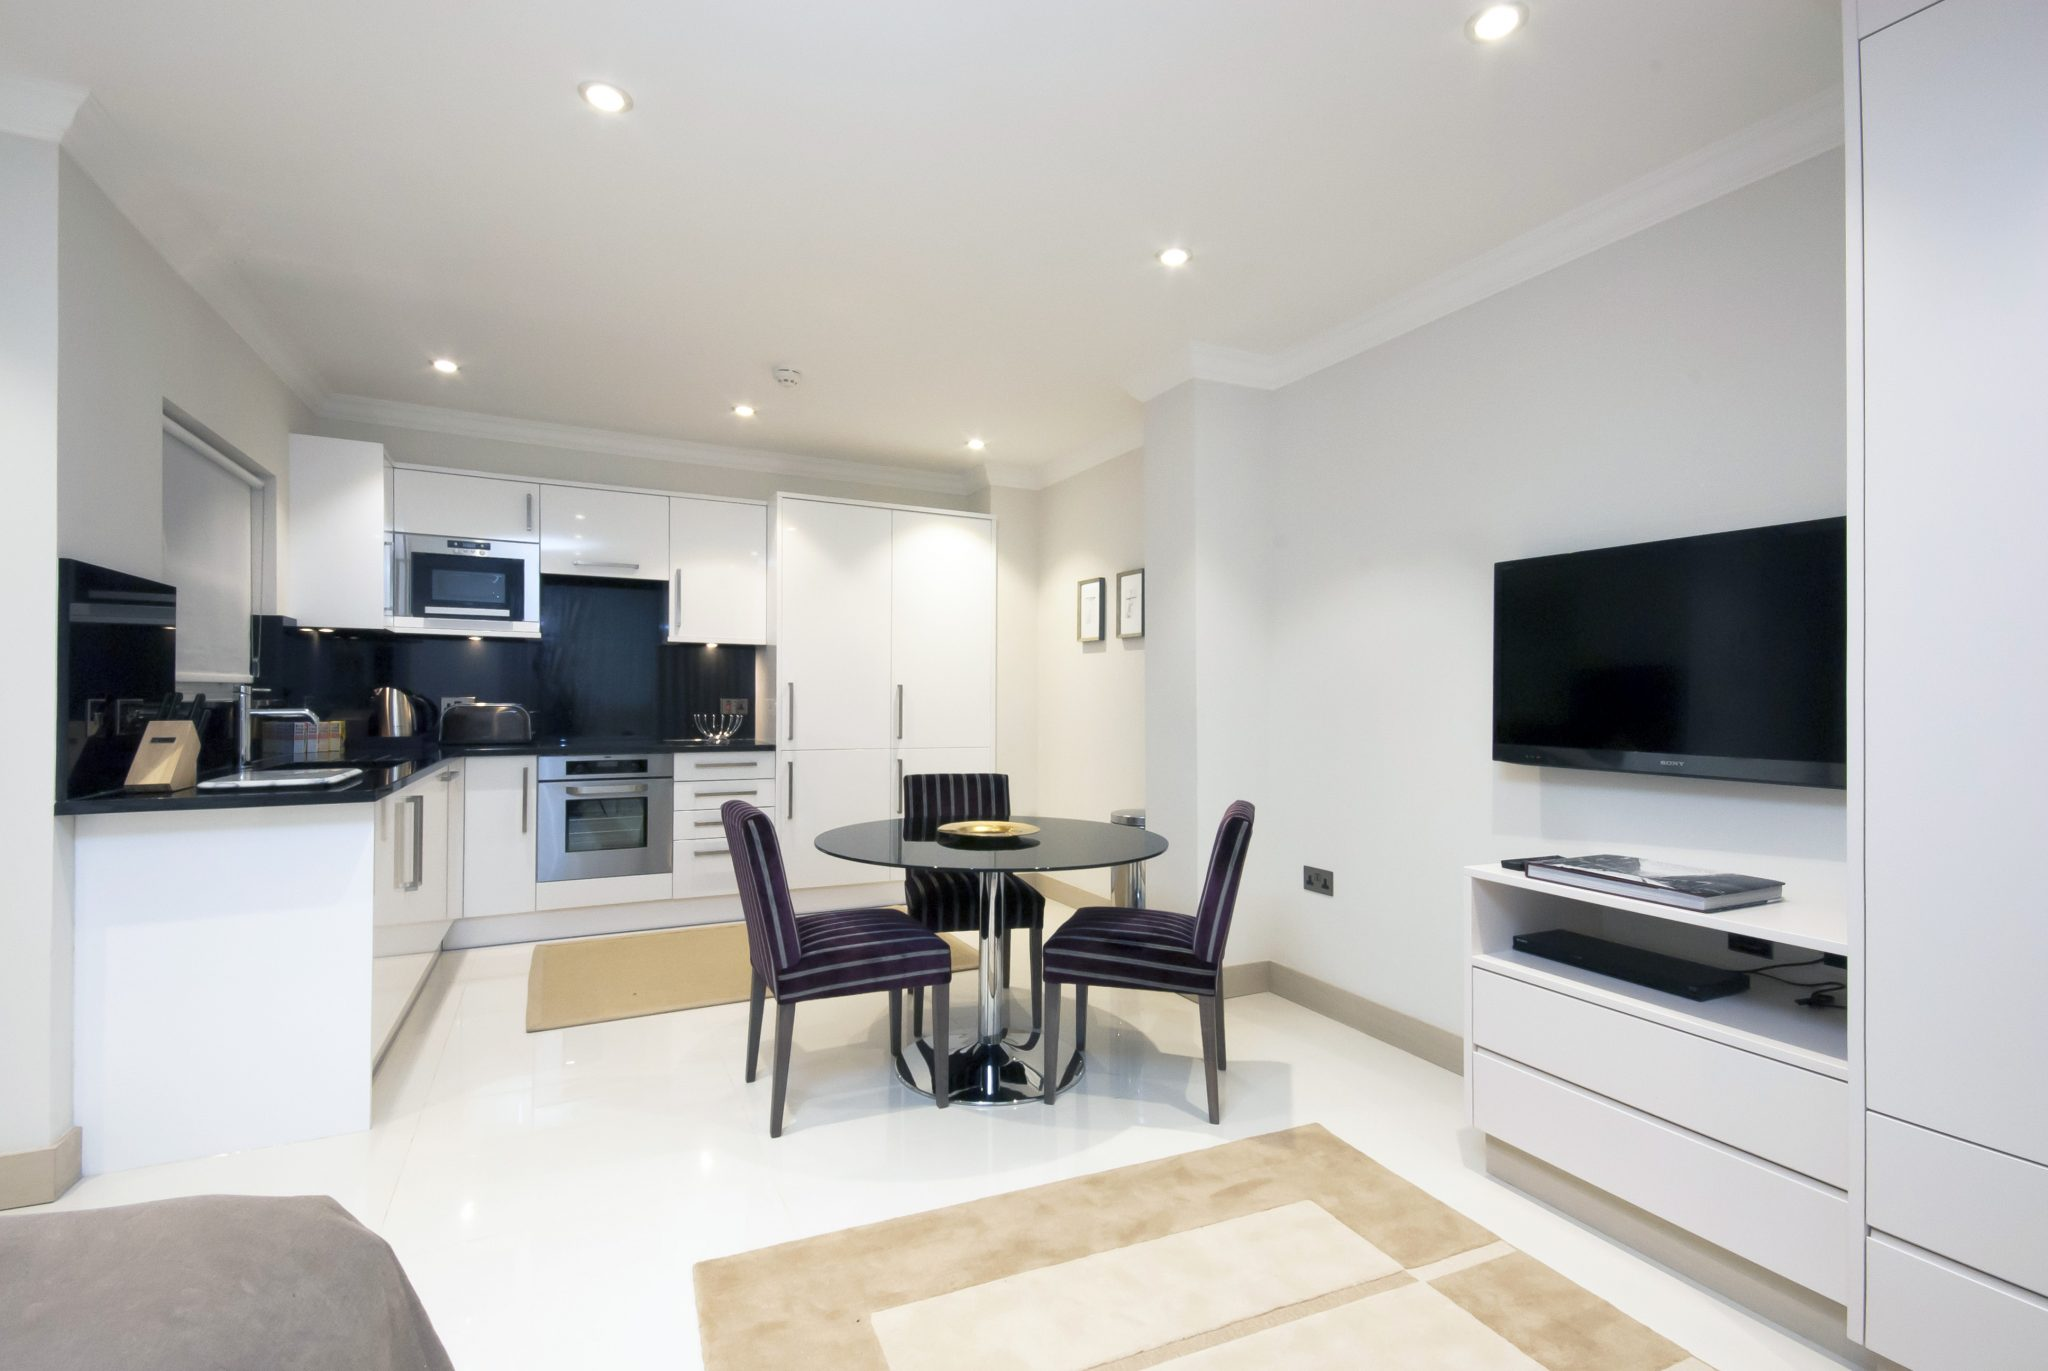 Efficiency Apartment Vs Studio Claverley Court Studio Apartment Maykenbel Properties